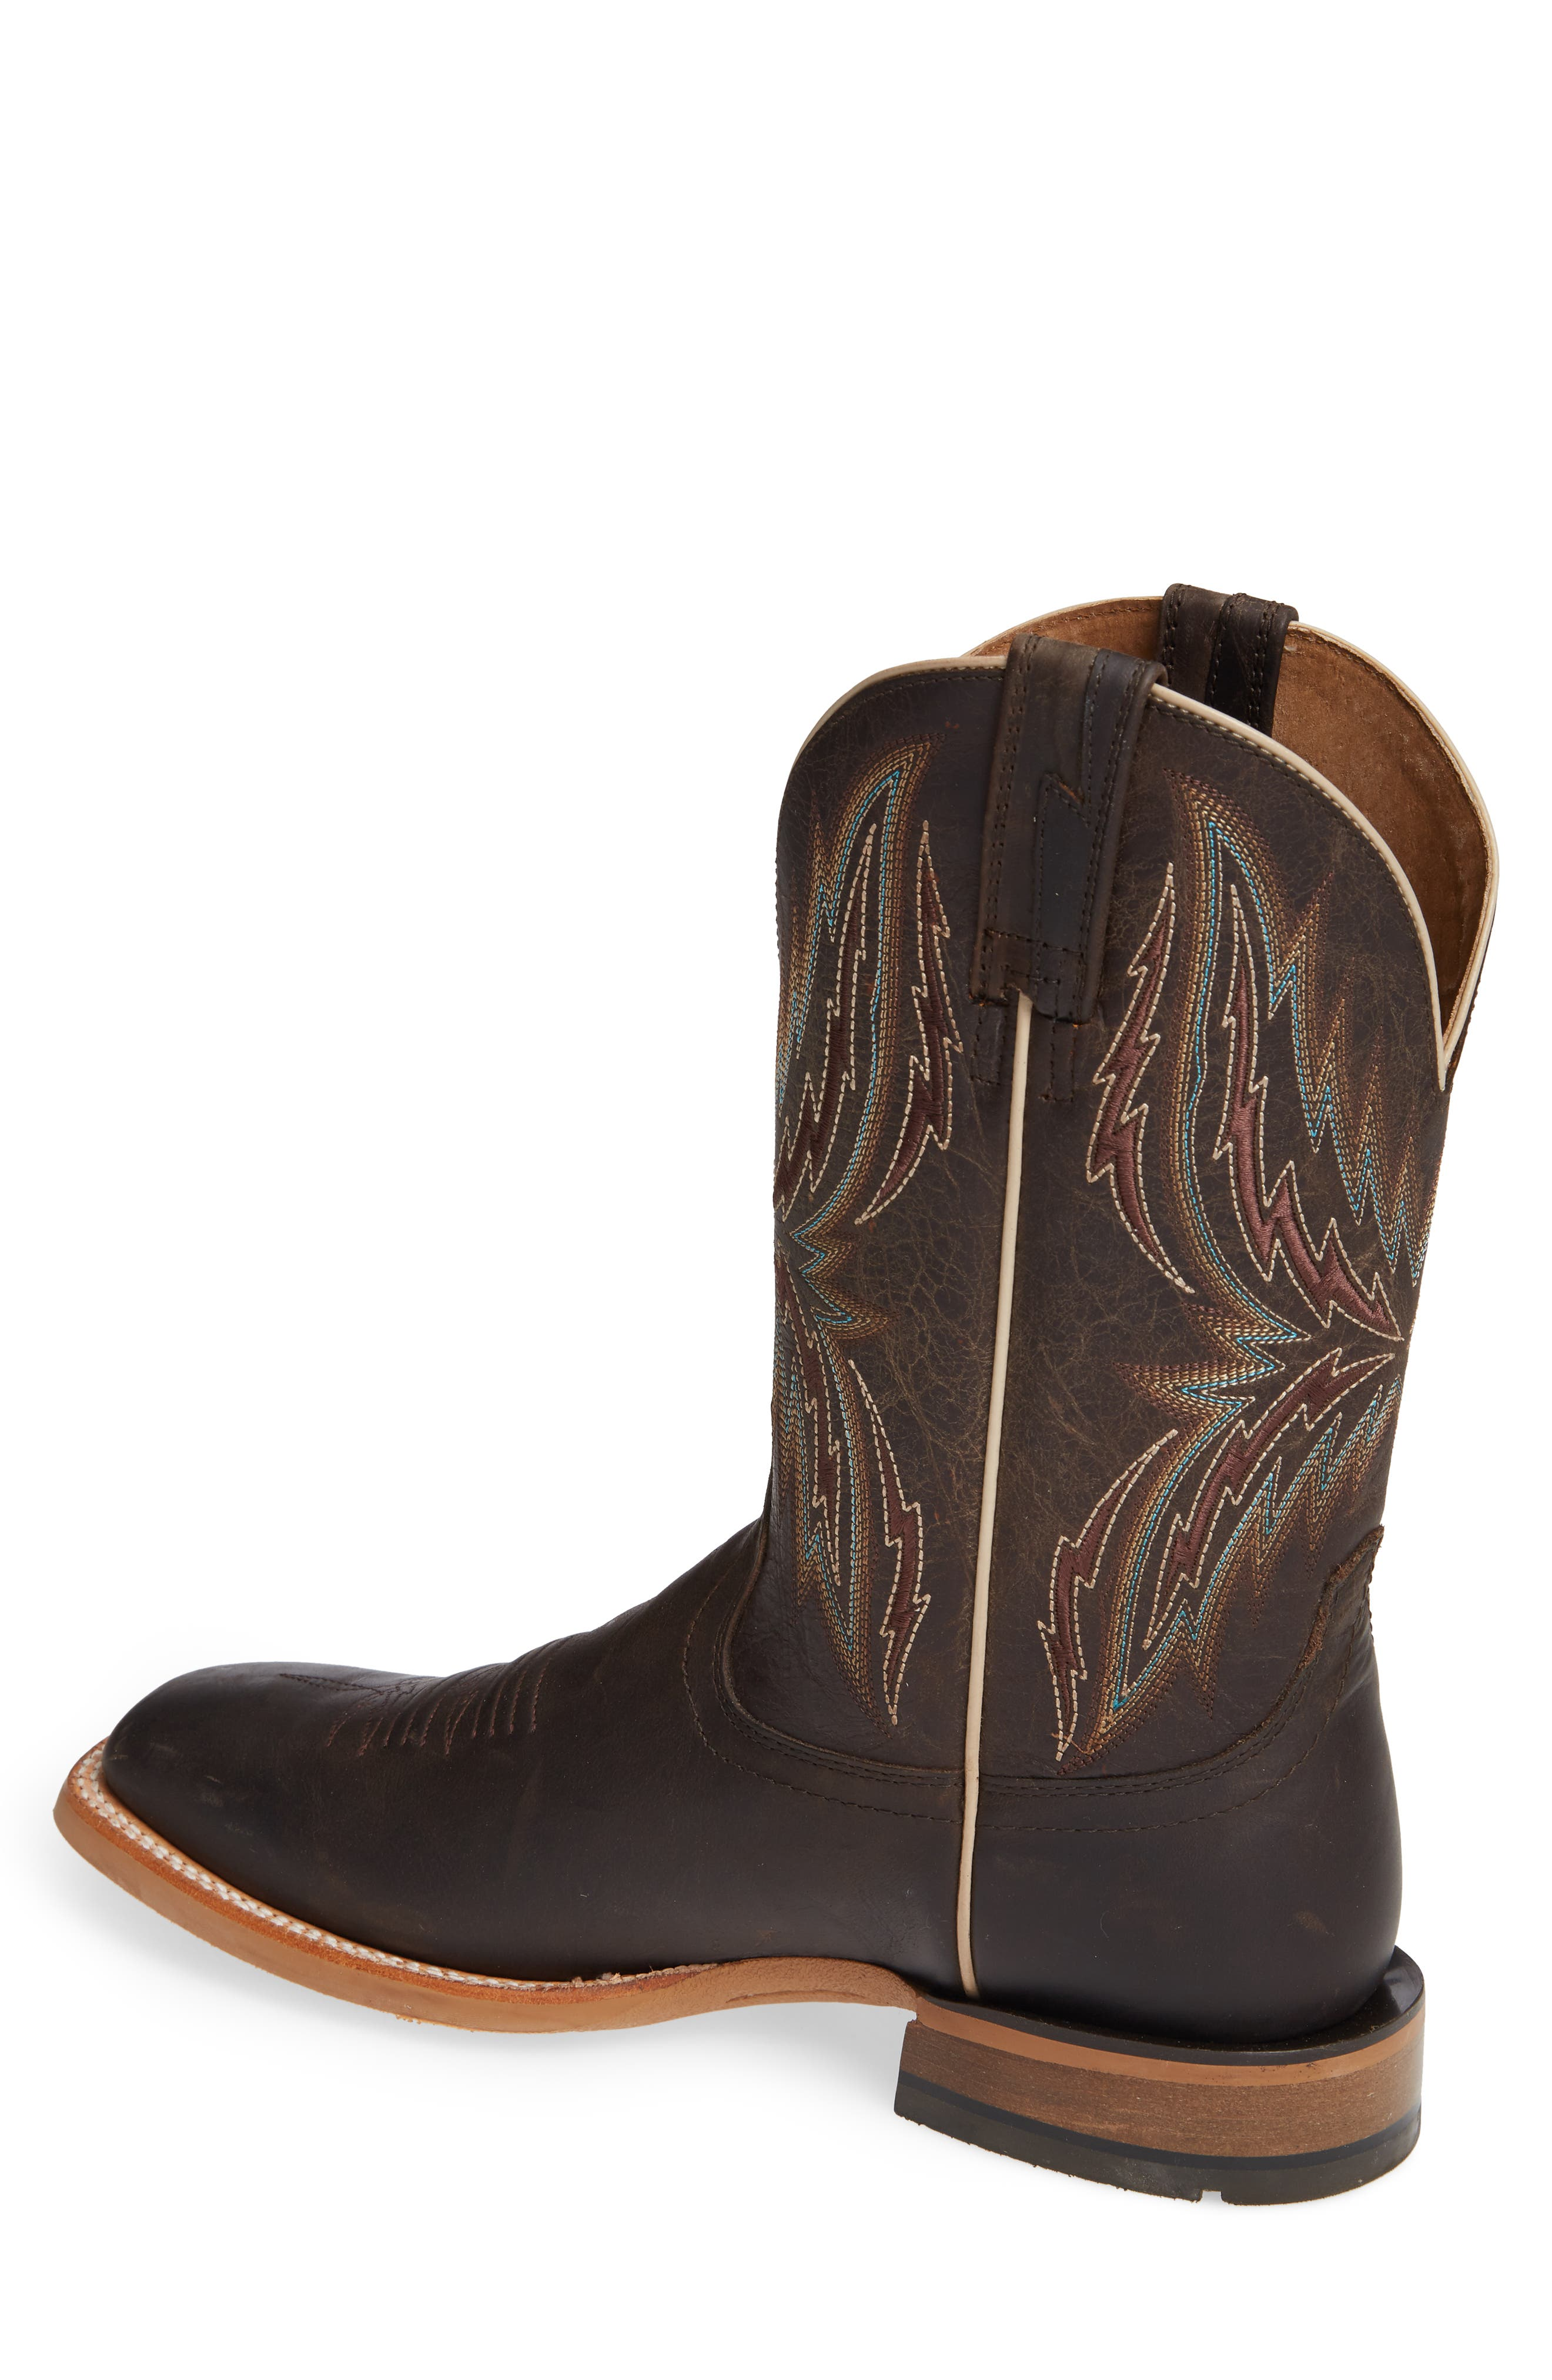 ARIAT, Arena Rebound Cowboy Boot, Alternate thumbnail 2, color, 200